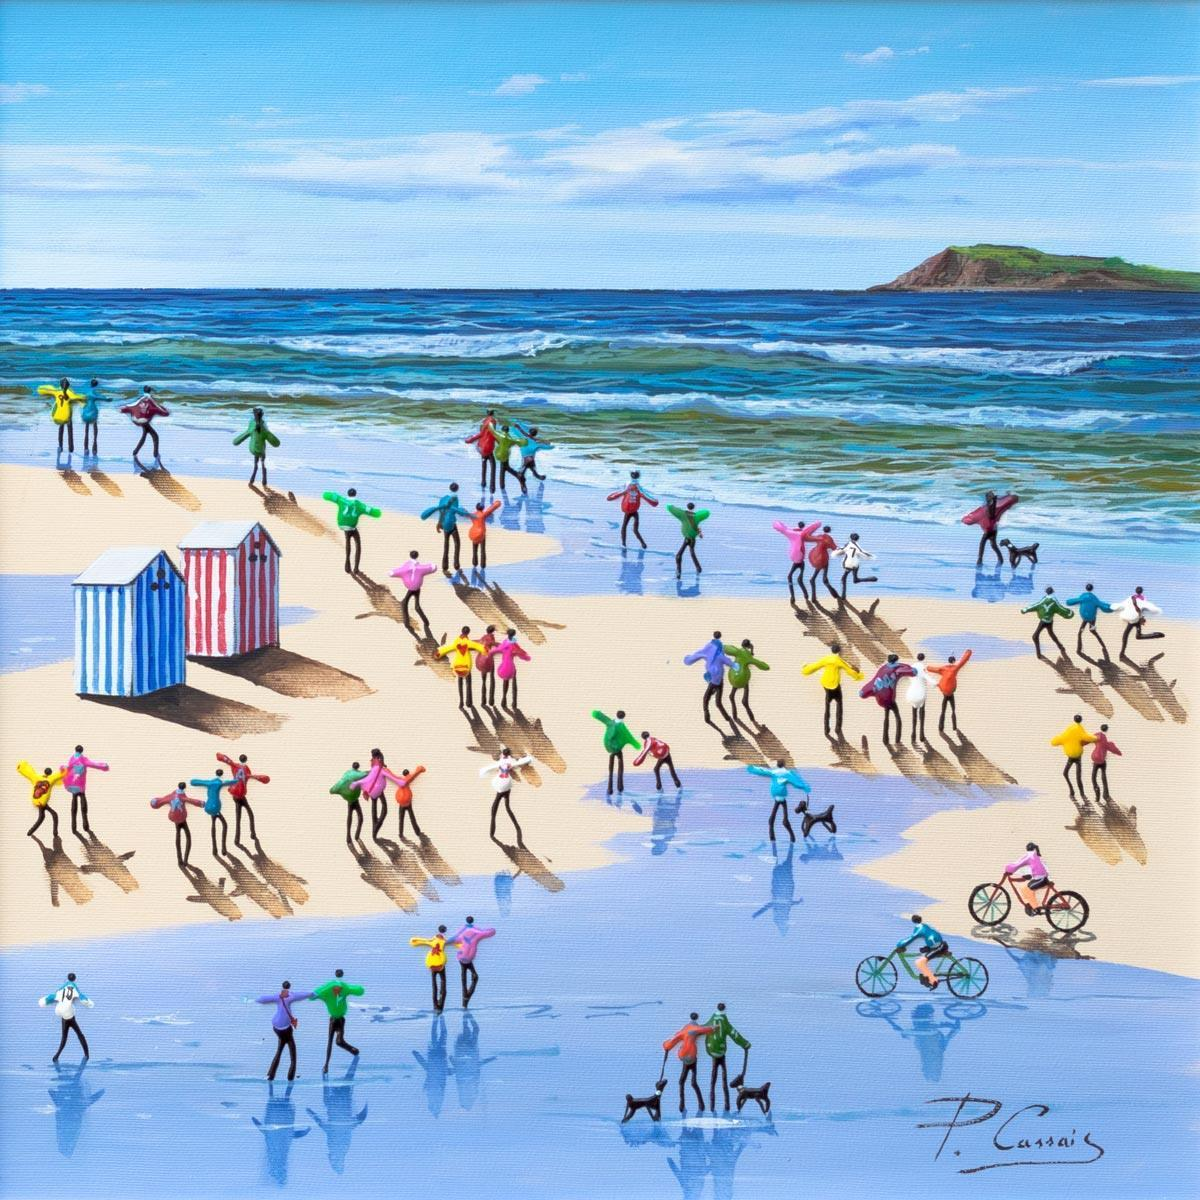 Holidaymakers Paola Cassais Framed